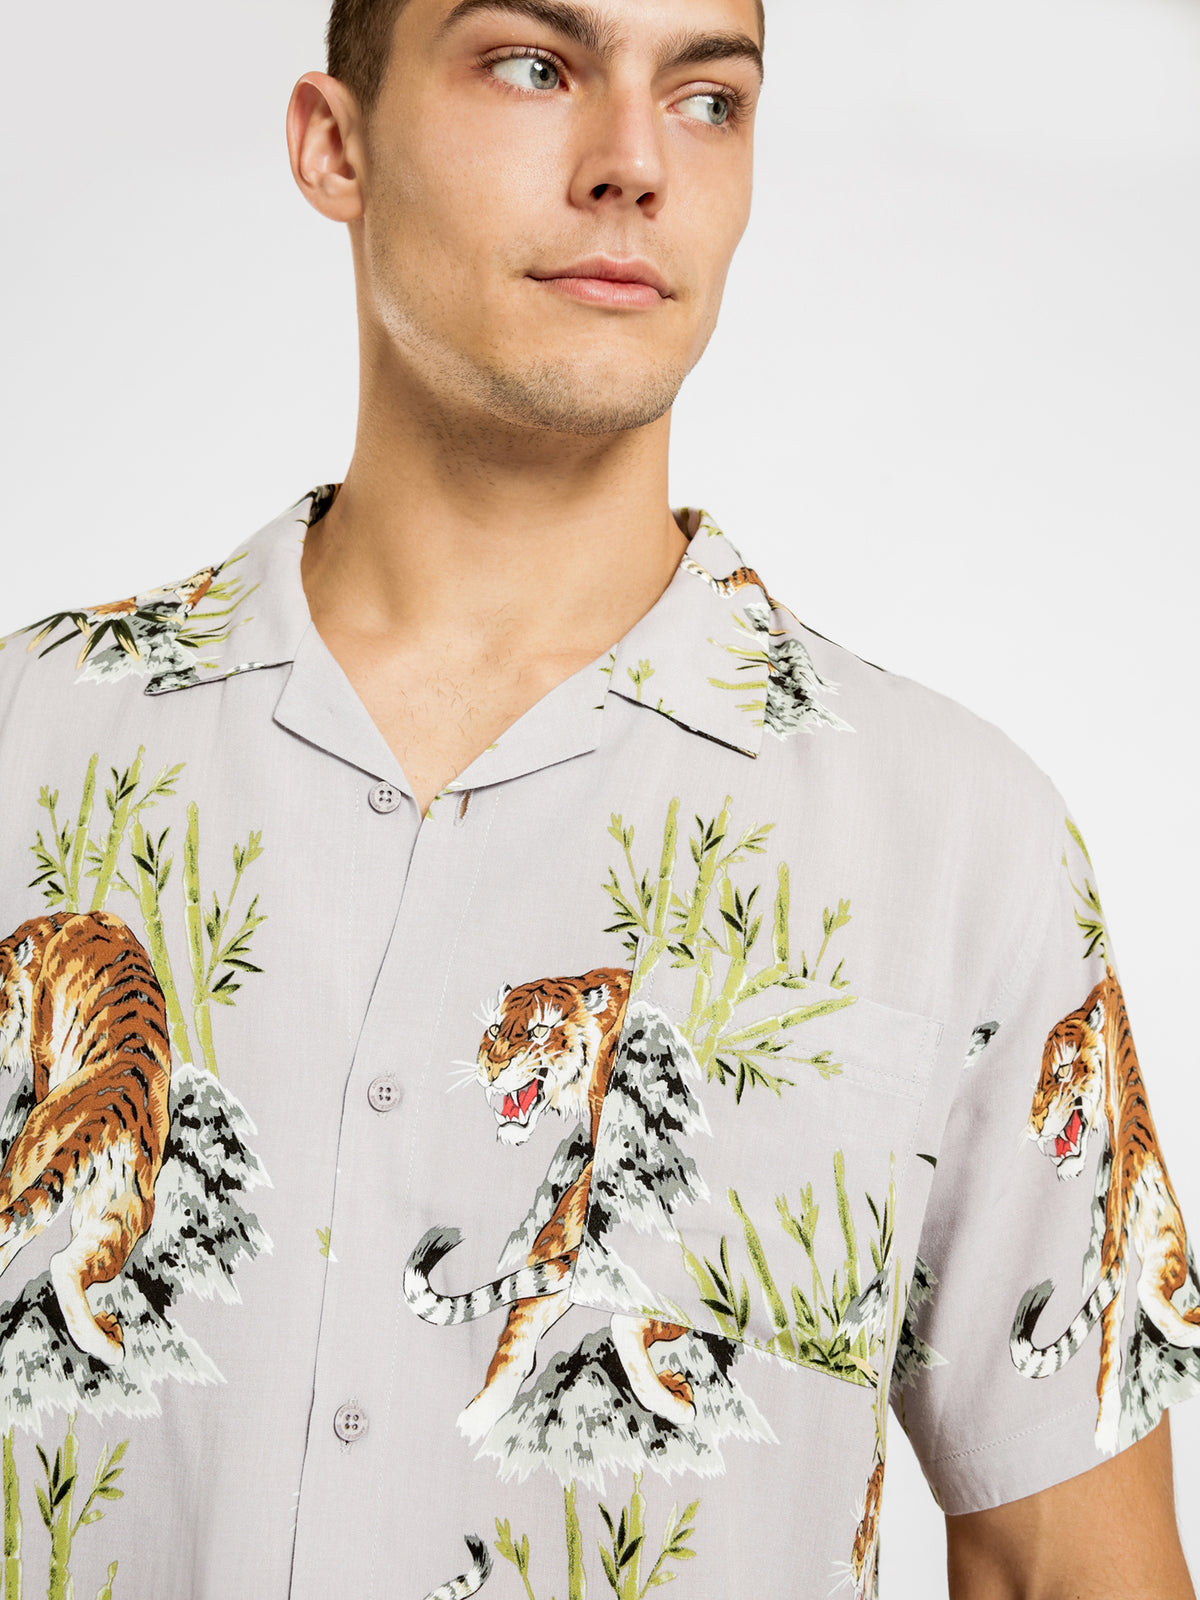 Orient Short Sleeve Shirt in Mauve Tiger Print